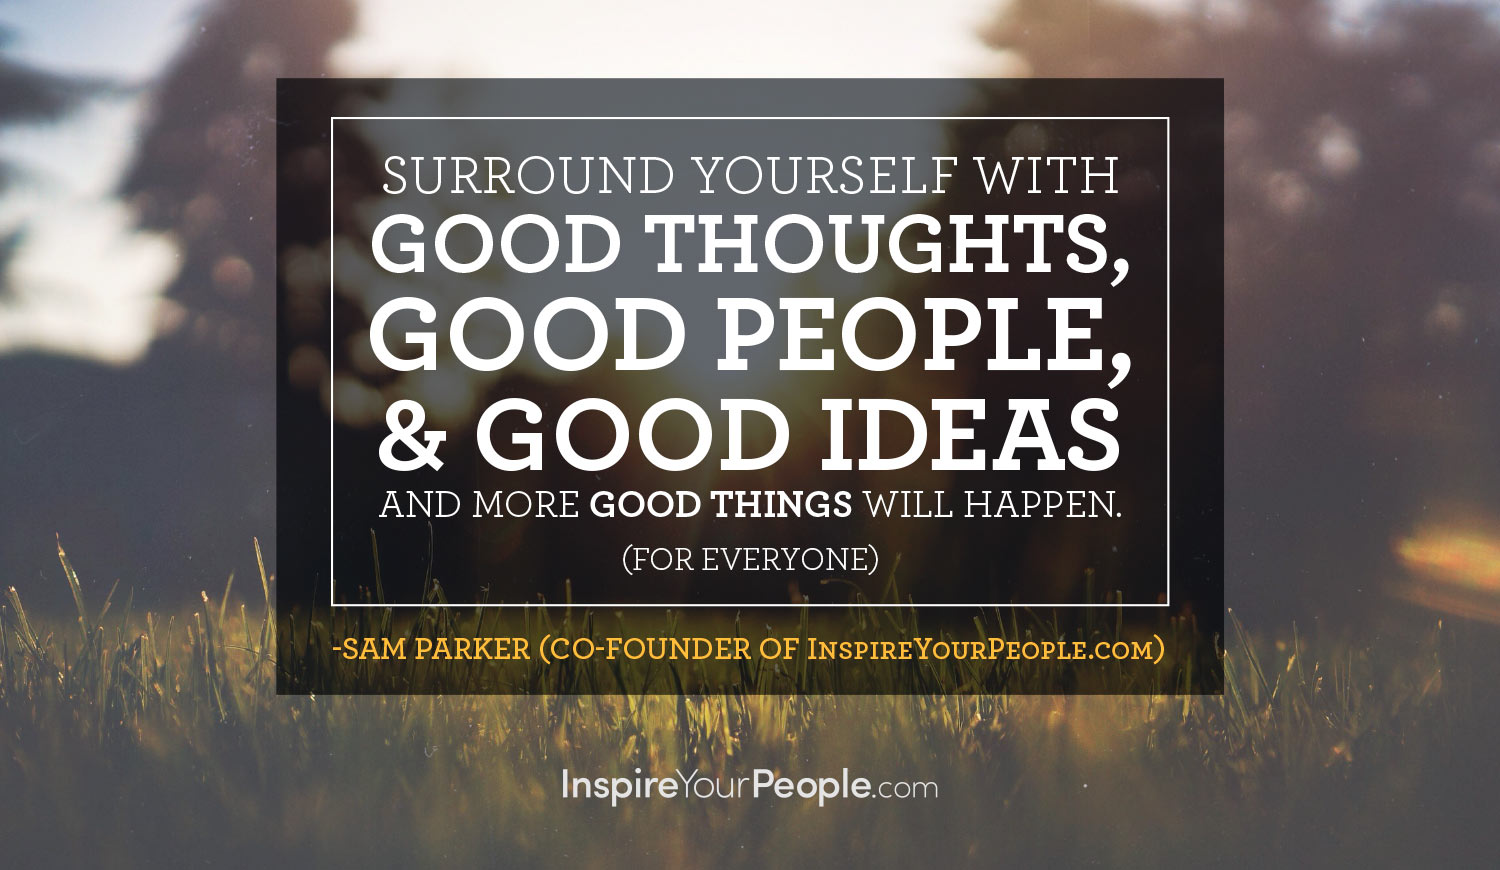 Surround yourself with good people, good thoughts, and good ideas and more good things will happen. (For everyone) - Sam Parker (co-founder of inspireyourpeople.com)